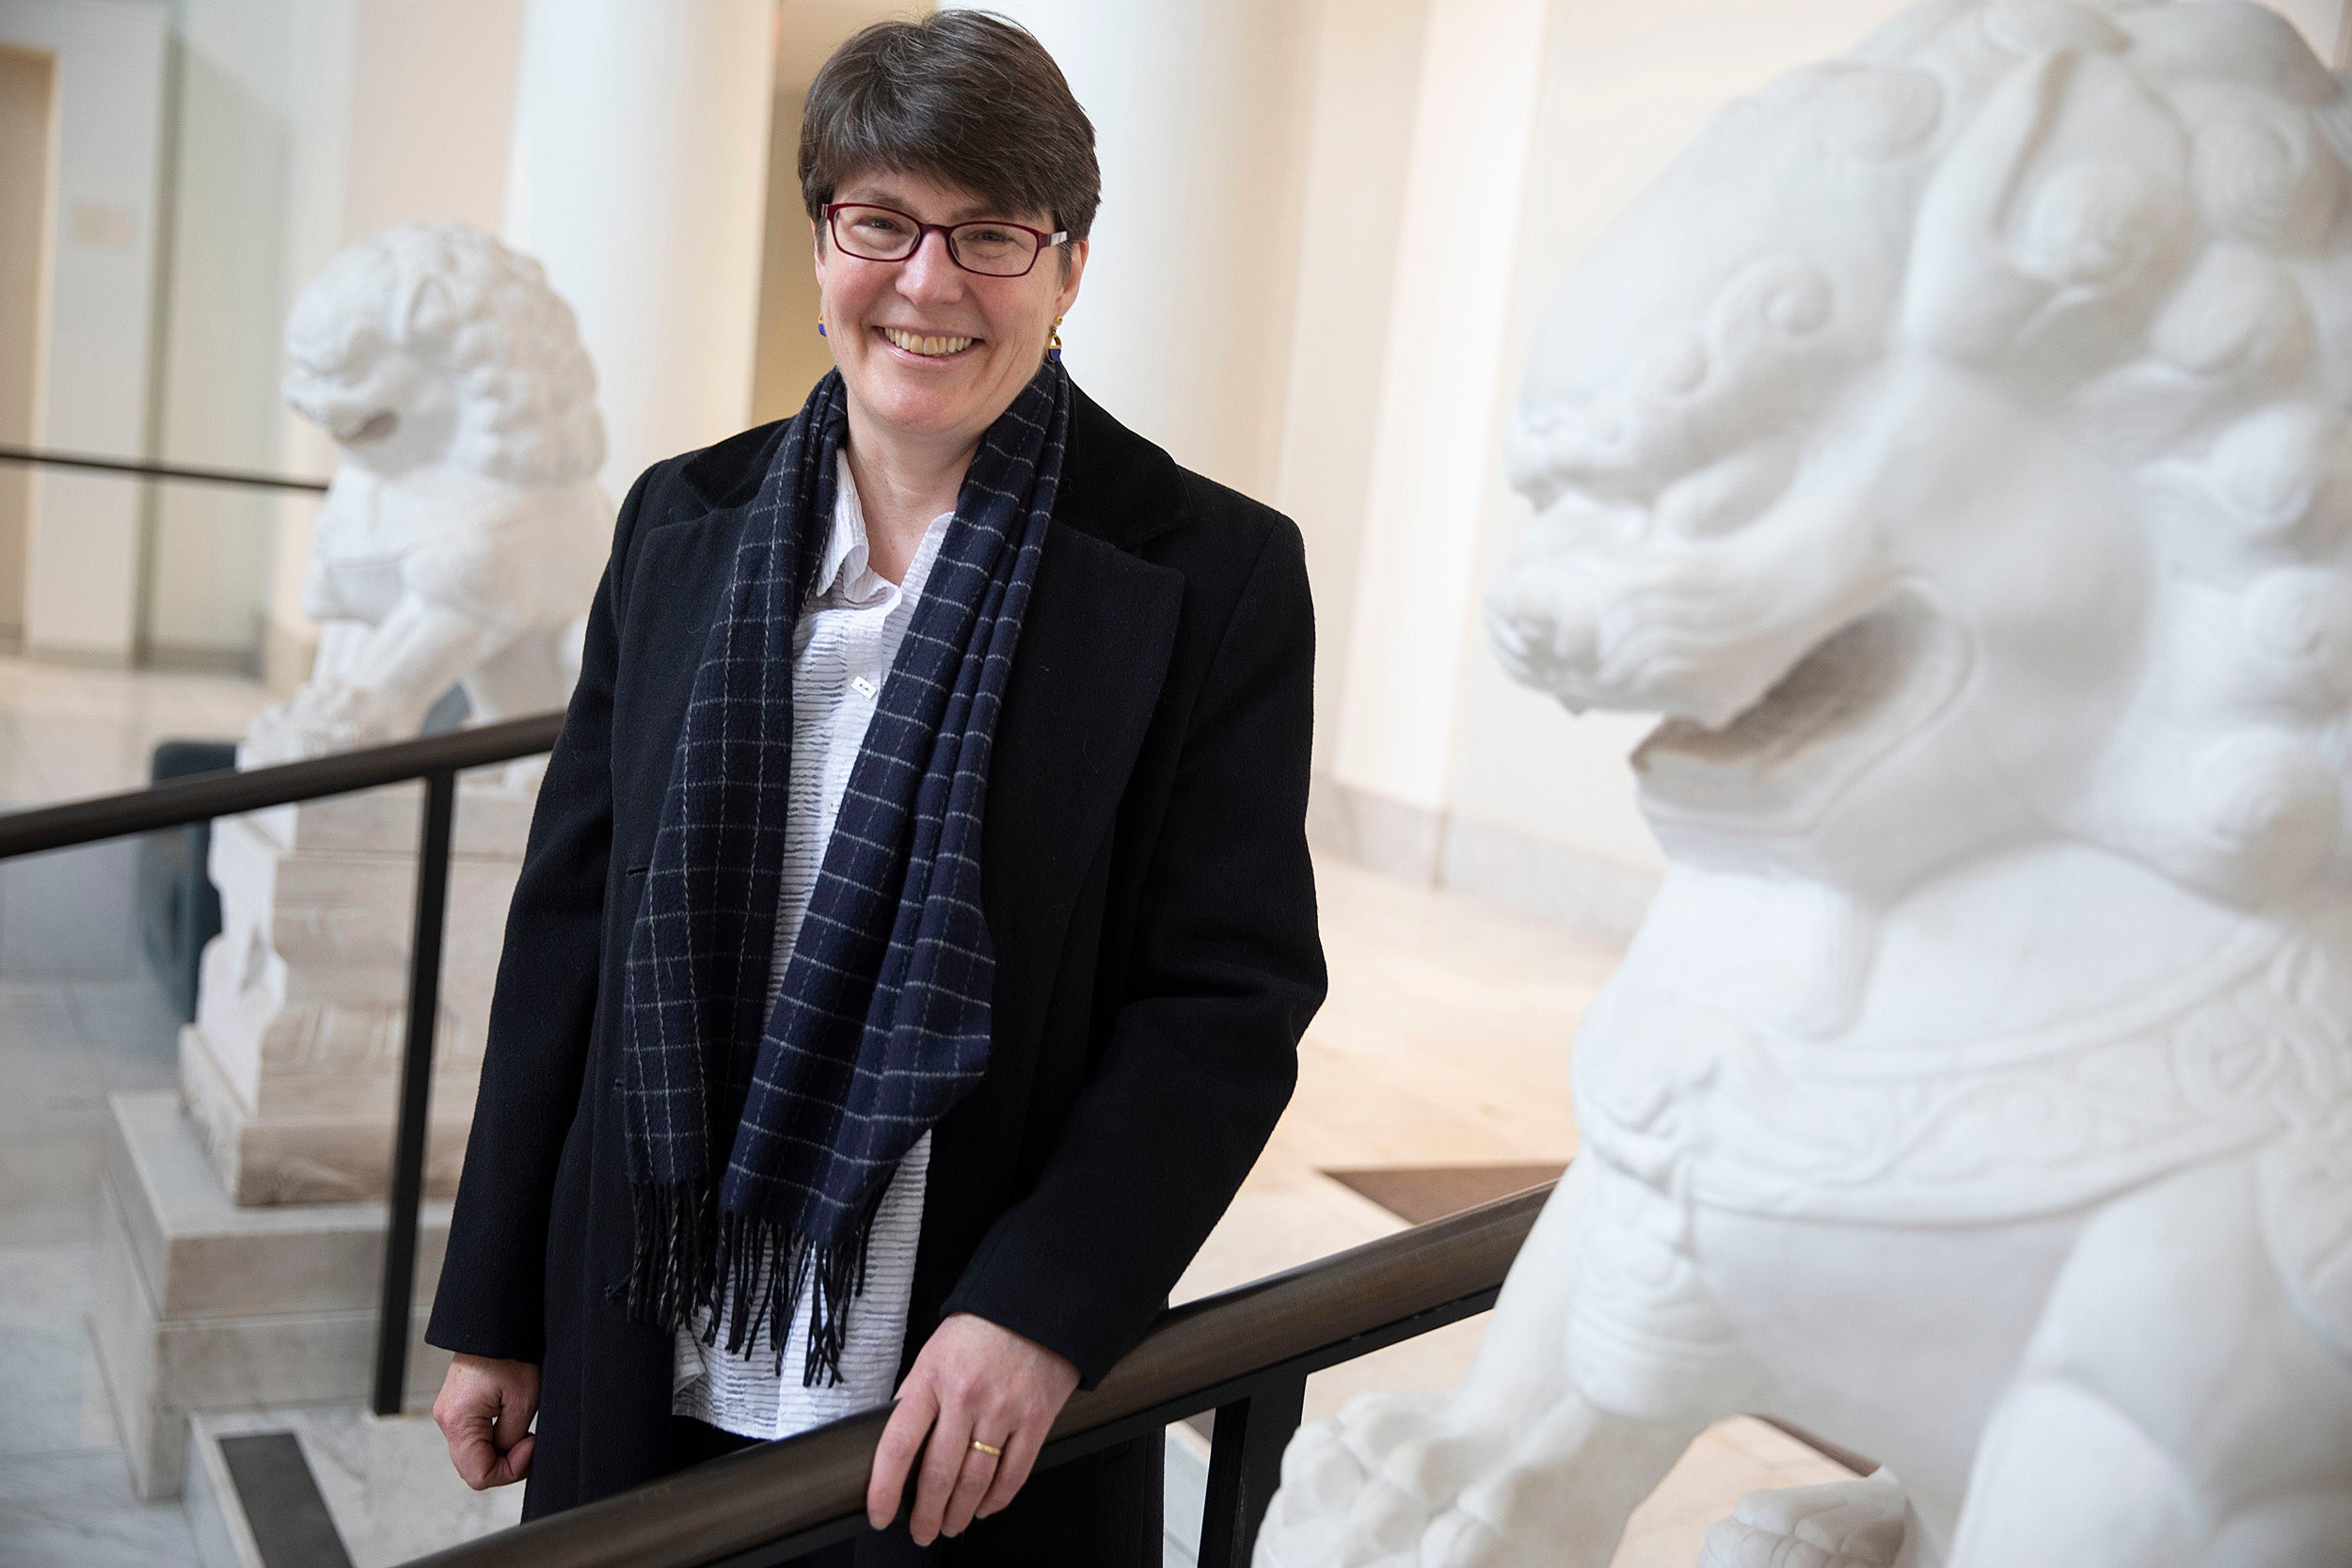 Nara Dillon's work in China seeks lessons from the country's successful battle against poverty that might be applied elsewhere.